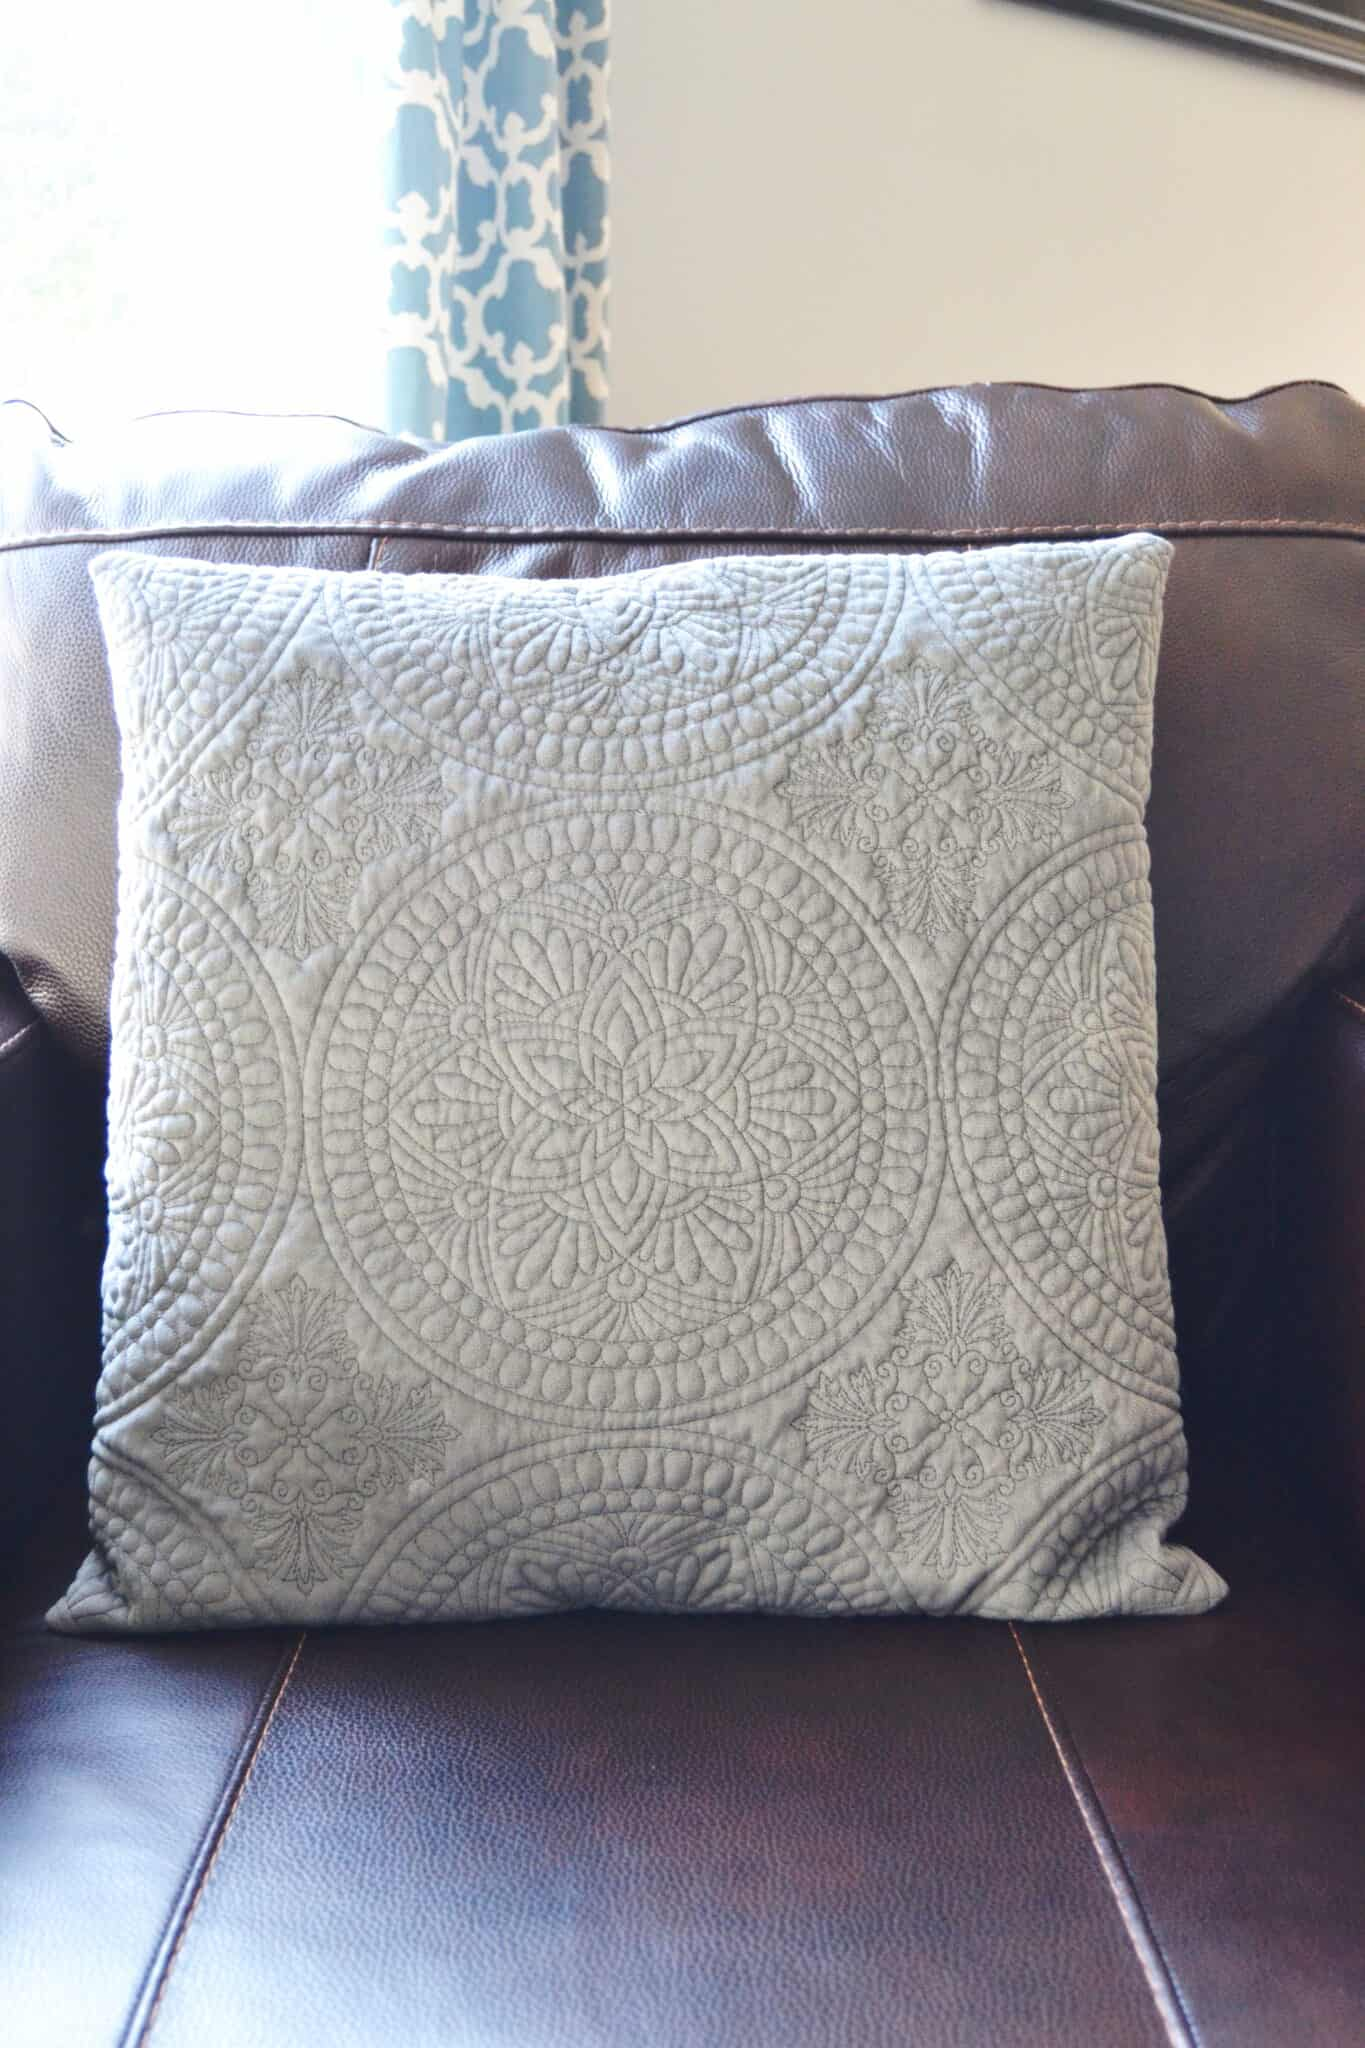 Sewing tutorial: Easy pillow cover in 4 steps